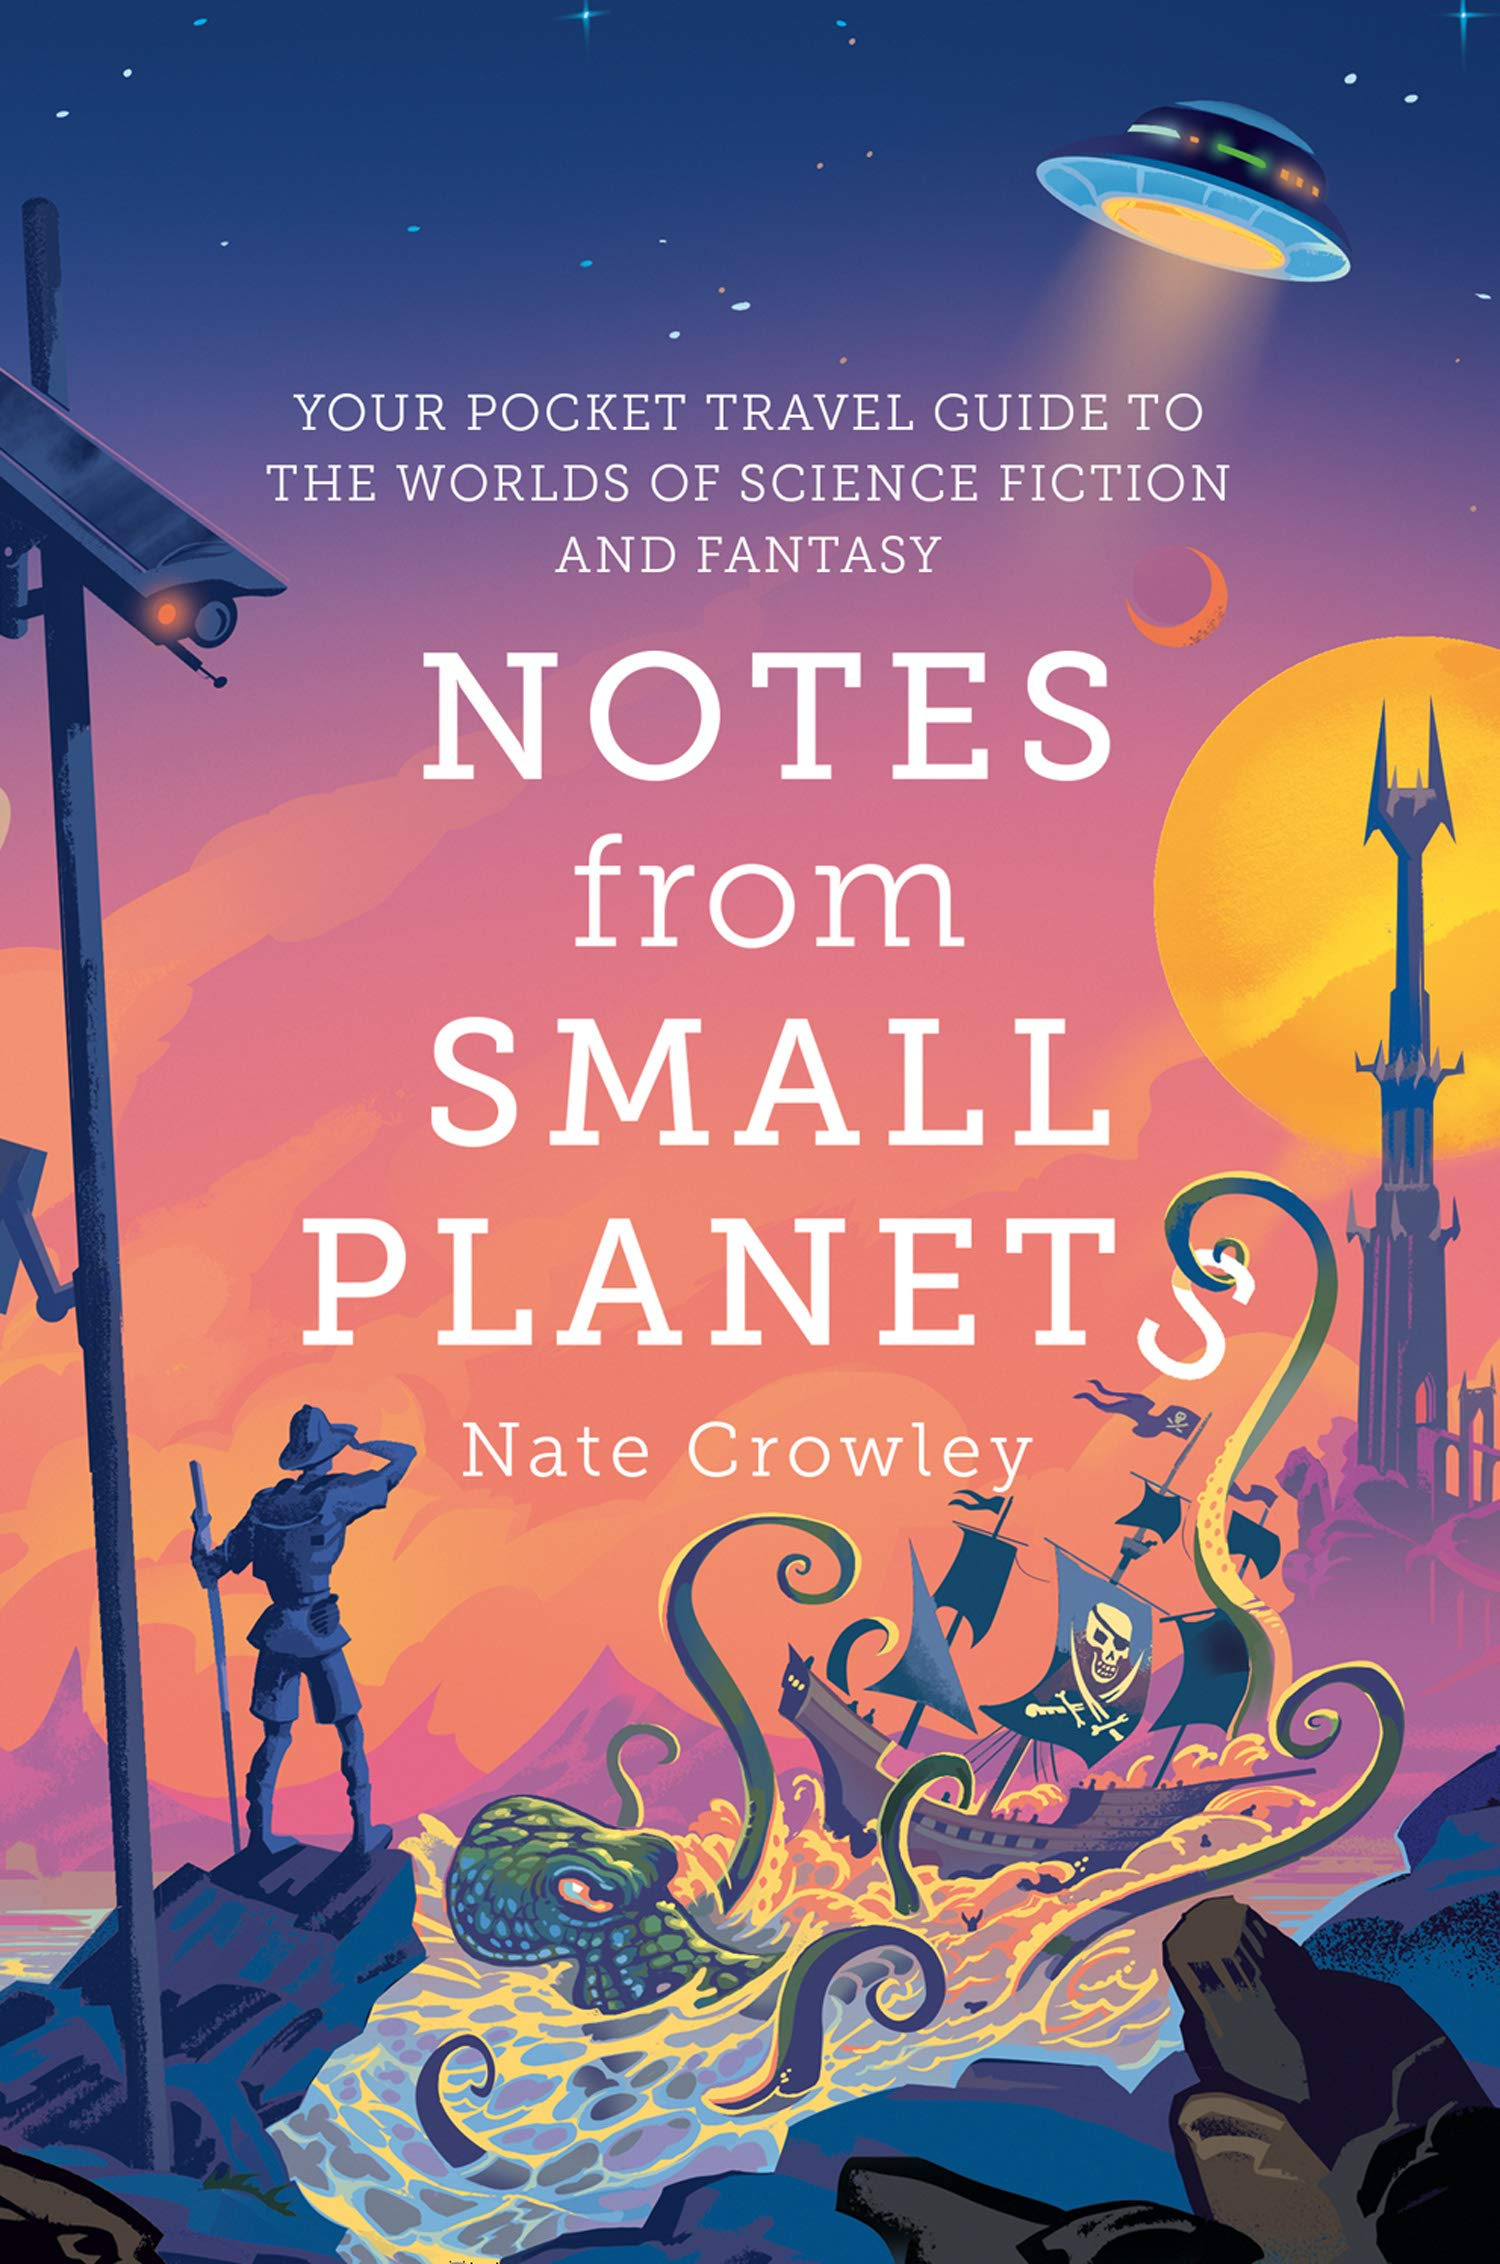 Notes from Small Planets: 2020's Essential Travel Guide to the Worlds of  Science Fiction and Fantasy! The ONLY Travel Guide You'll Need This Year!:  Amazon.co.uk: Crowley, Nate: 9780008306861: Books